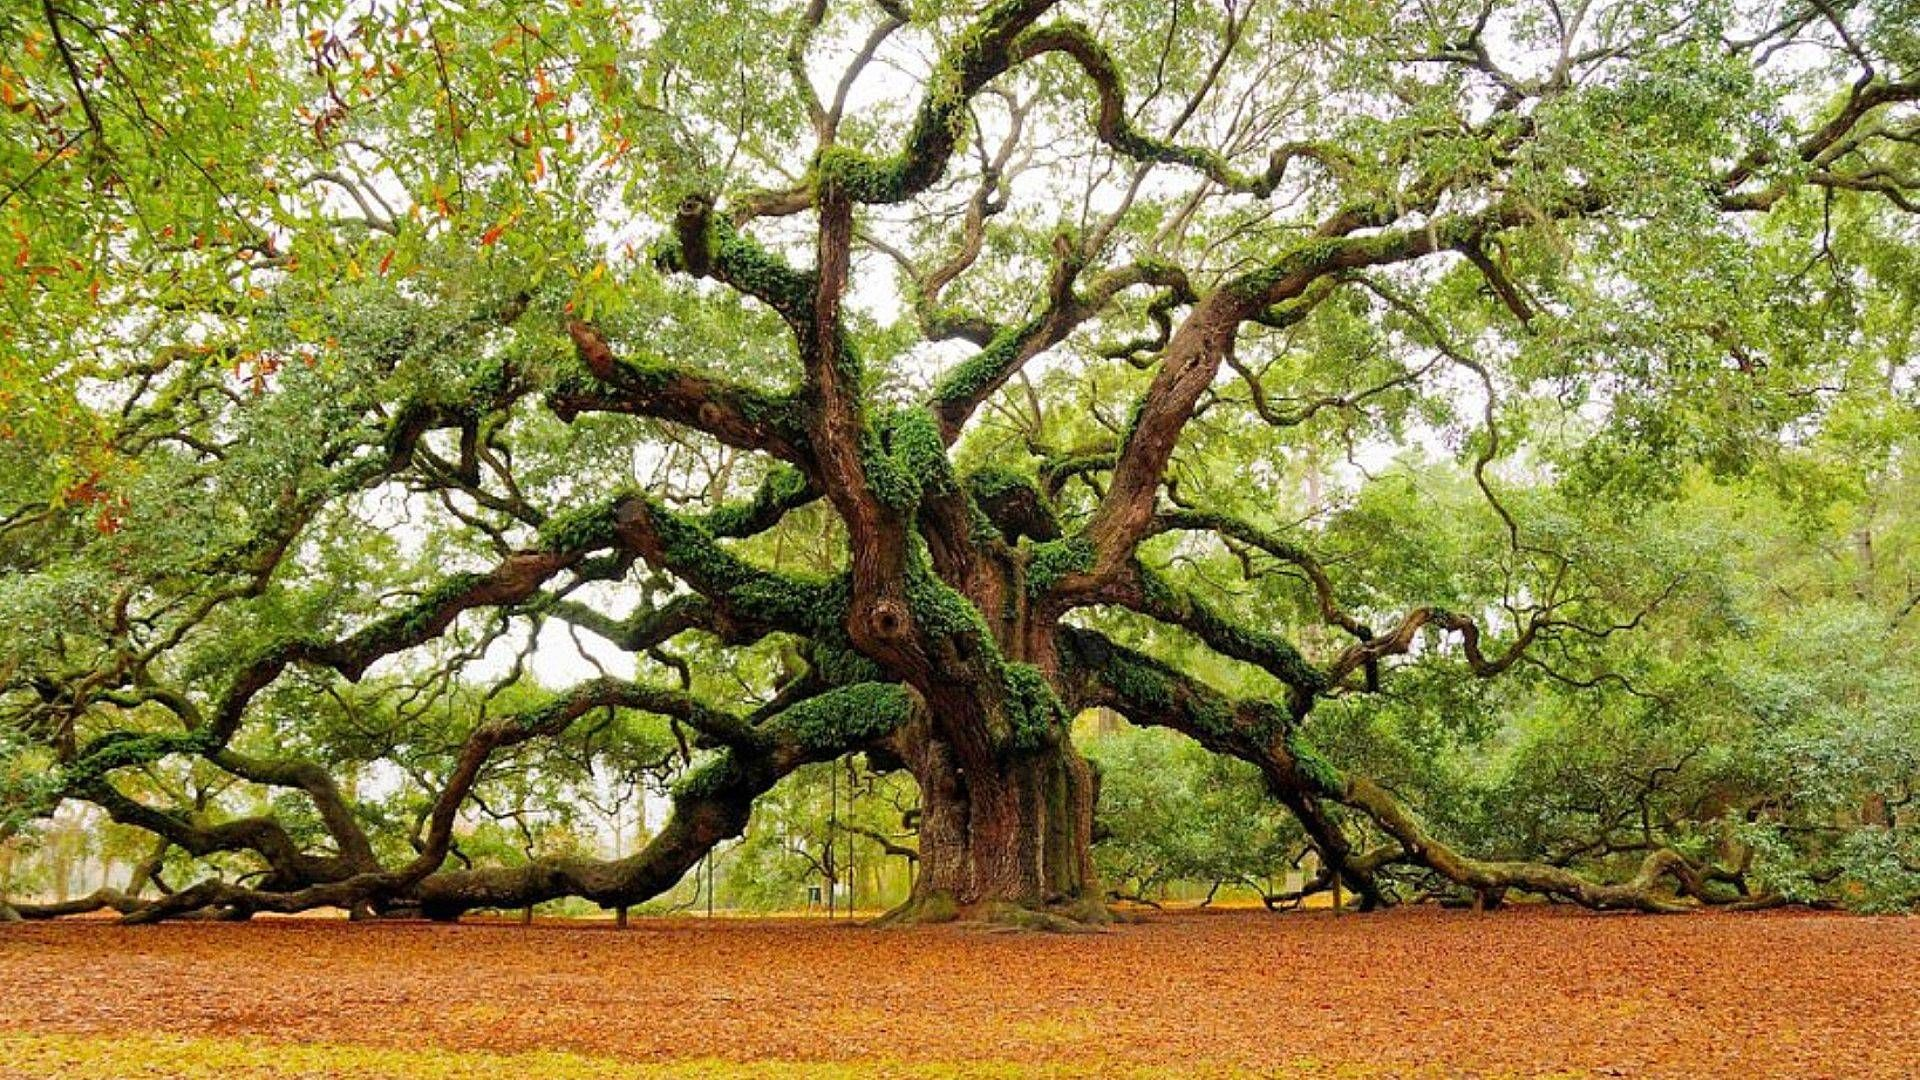 Angel Oak | Angel oak trees, Live oak trees, Tree photography